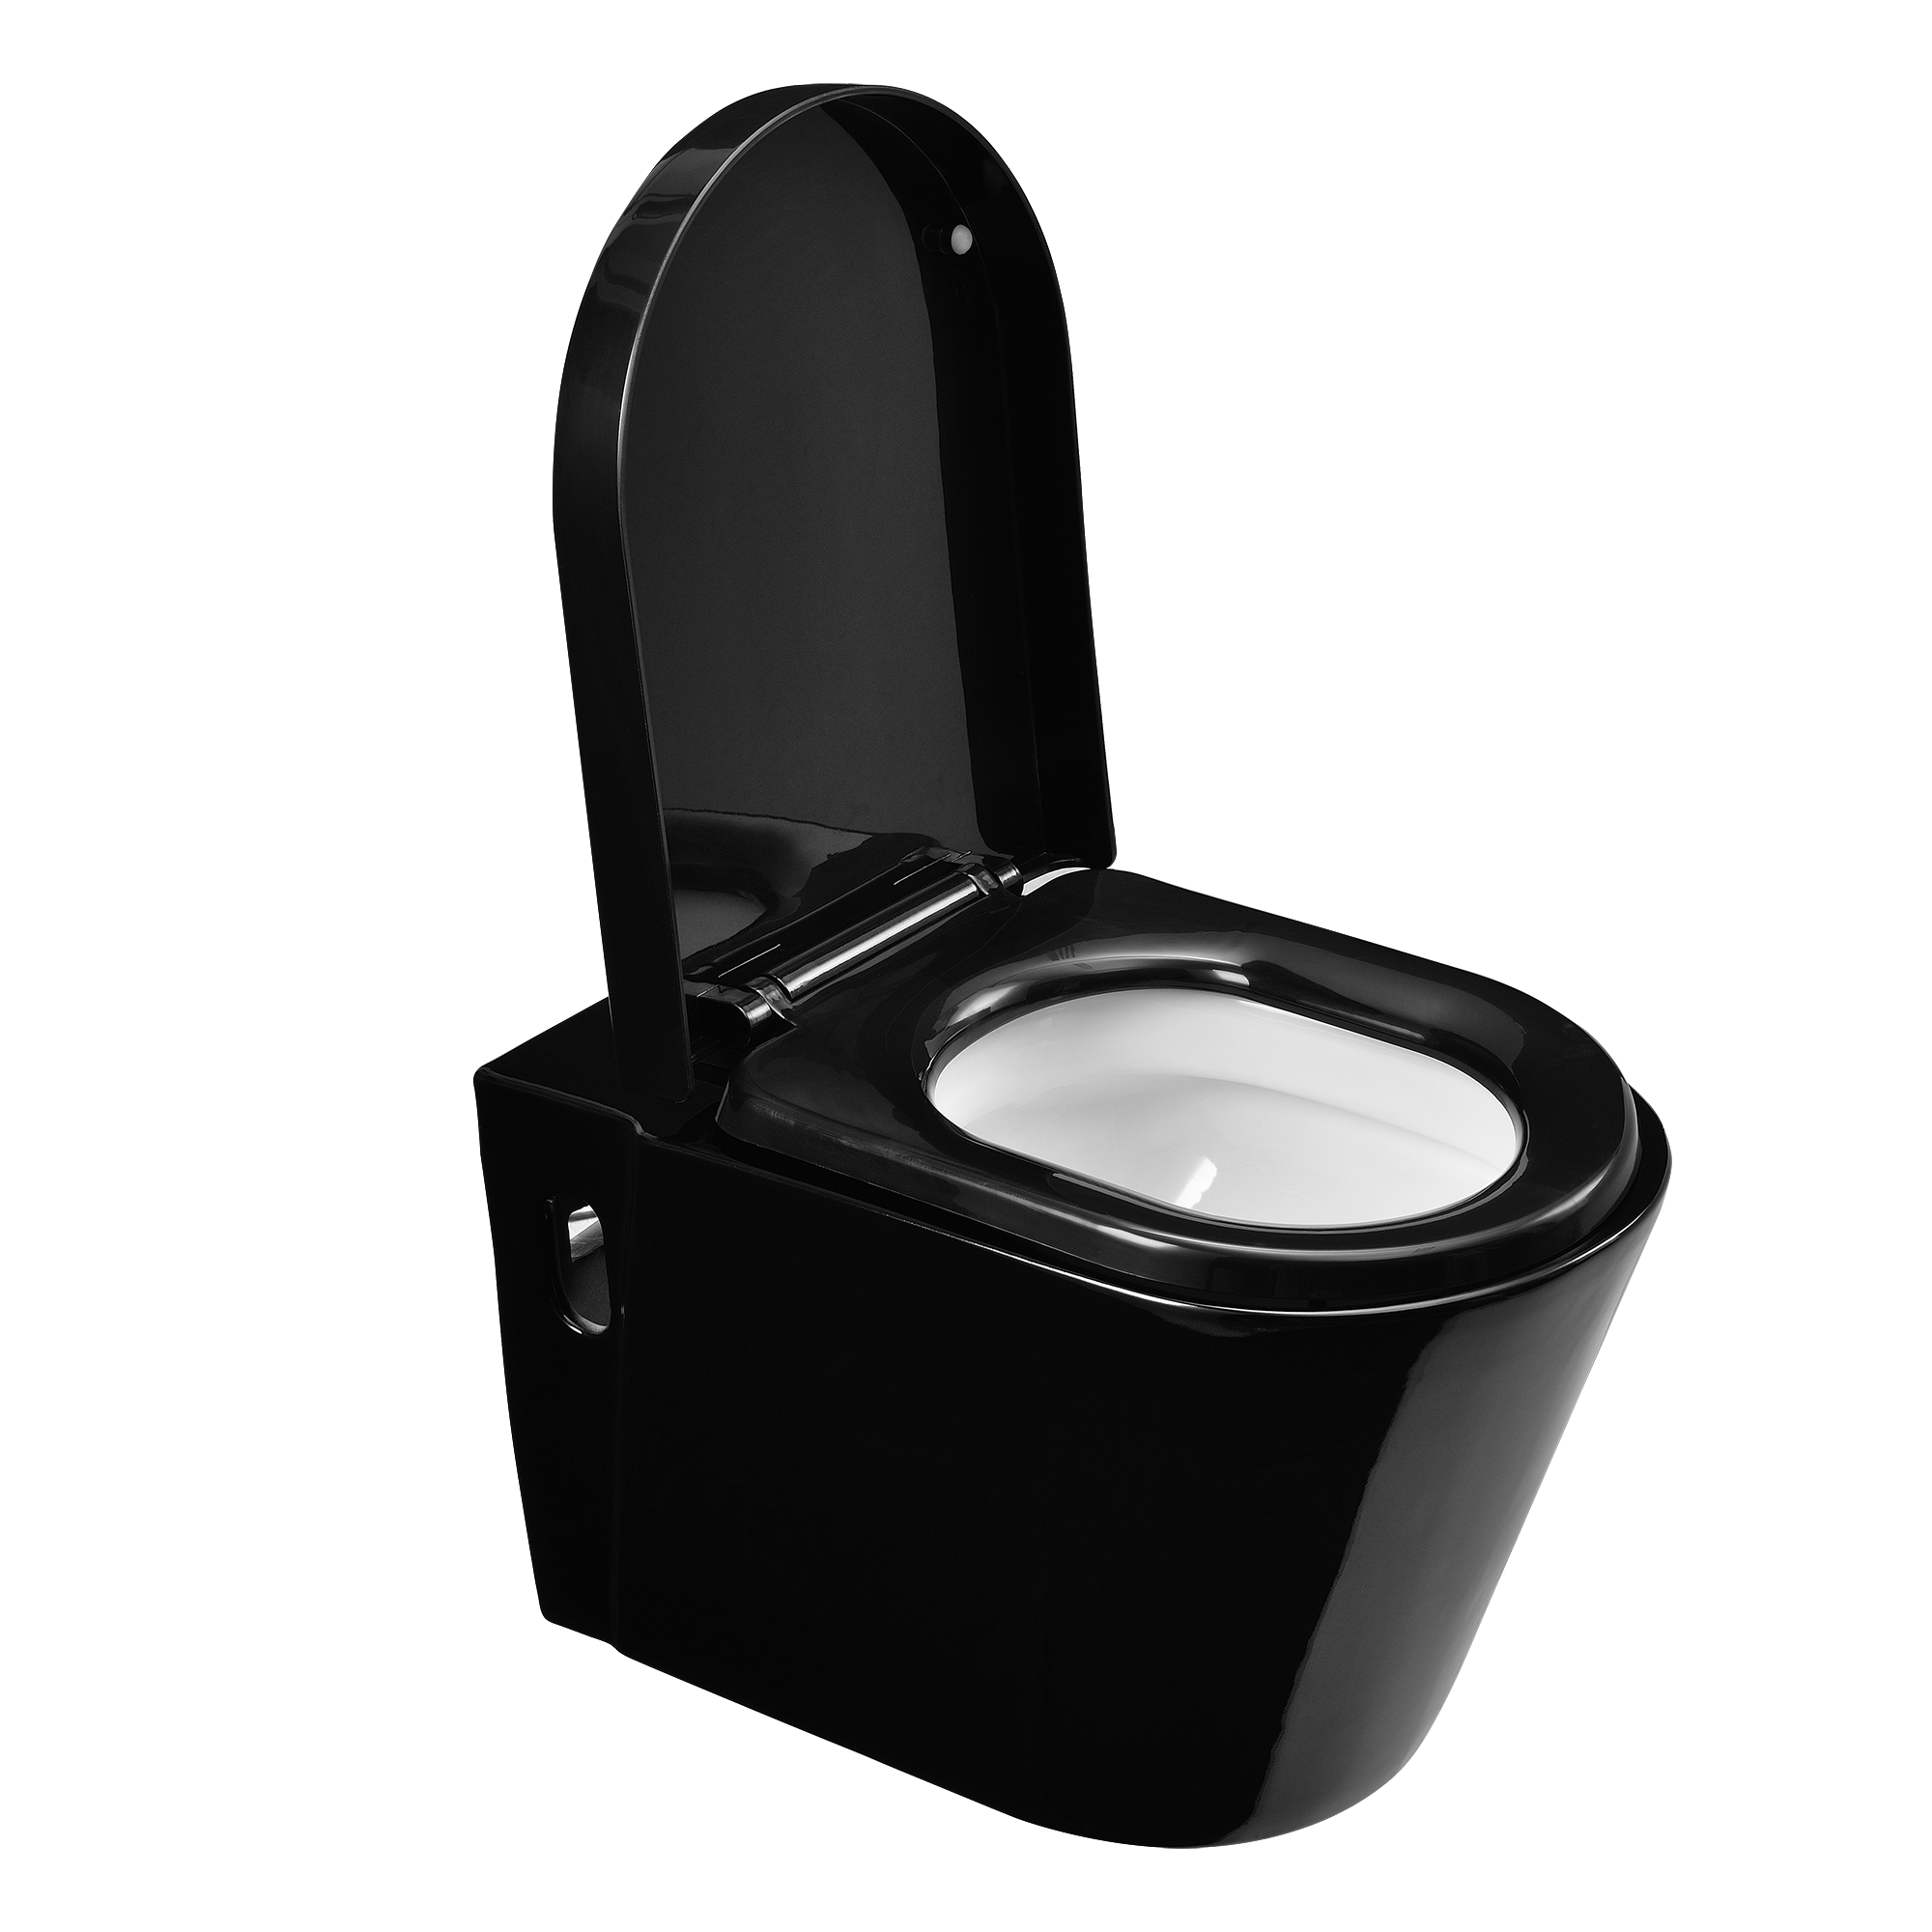 keramik wand h nge wc sp lkasten soft close toilette toilette klo ebay. Black Bedroom Furniture Sets. Home Design Ideas